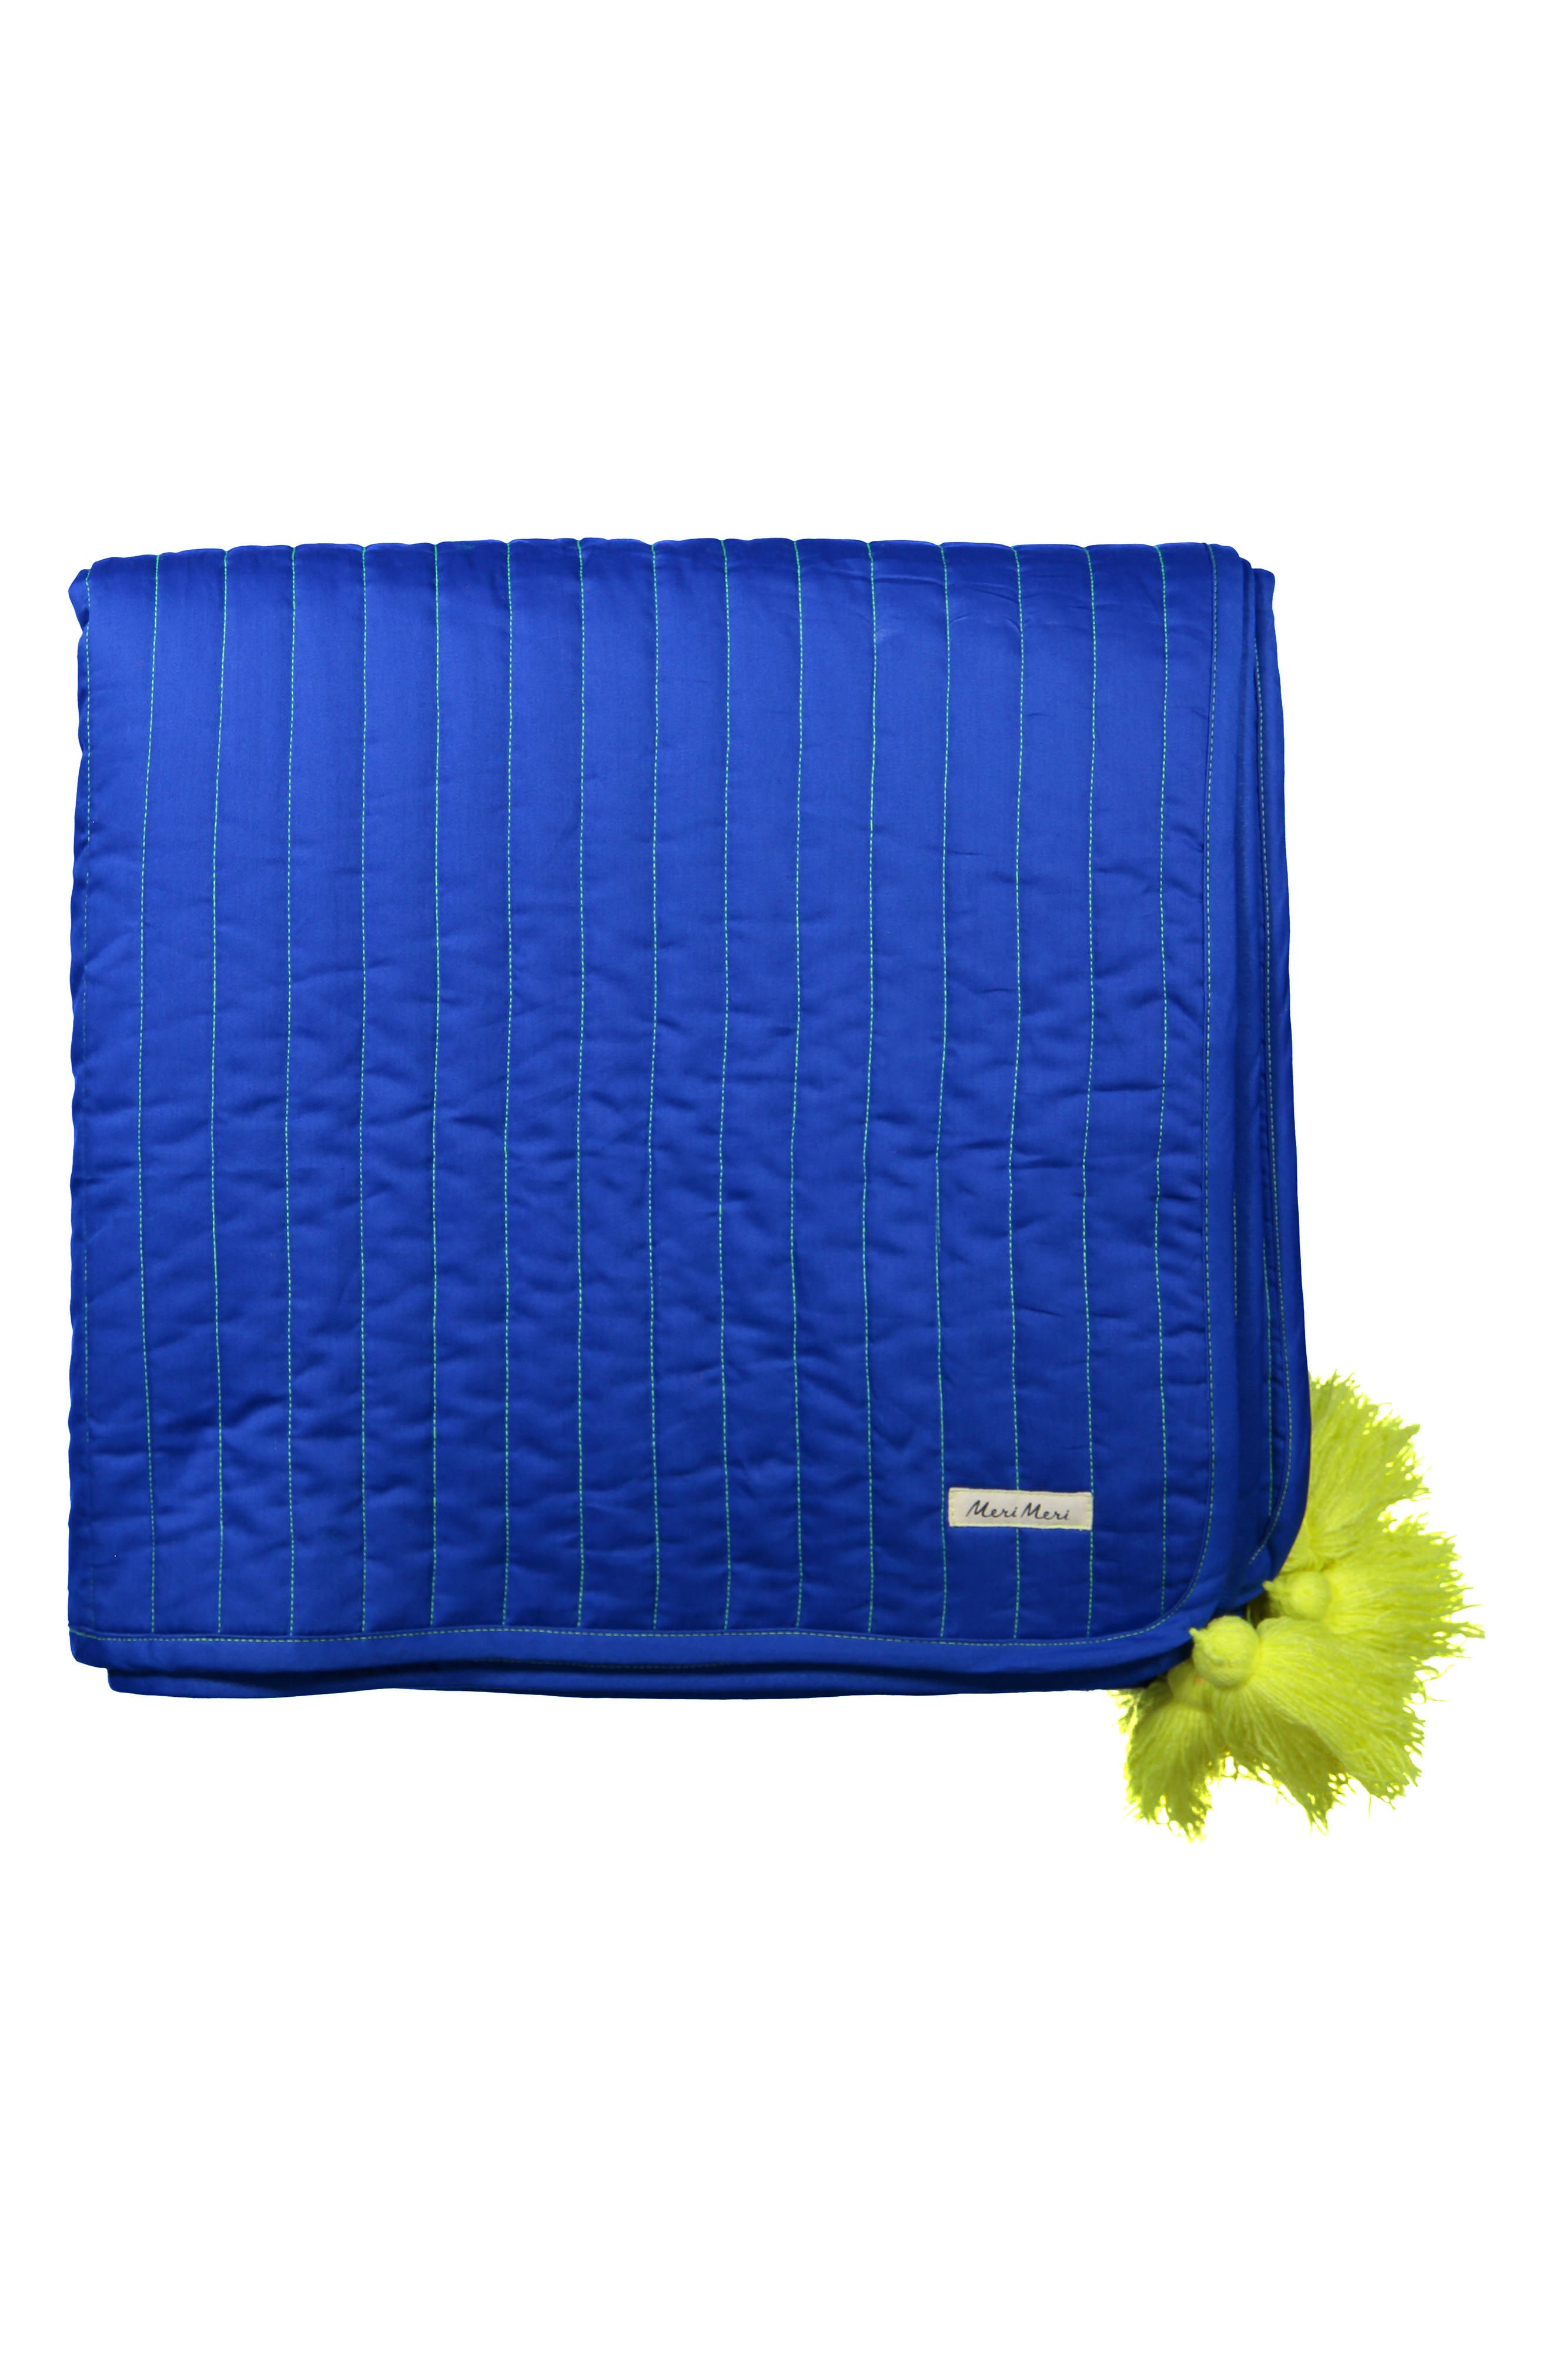 Organic Cotton Quilted Blanket,                             Alternate thumbnail 2, color,                             BLUE